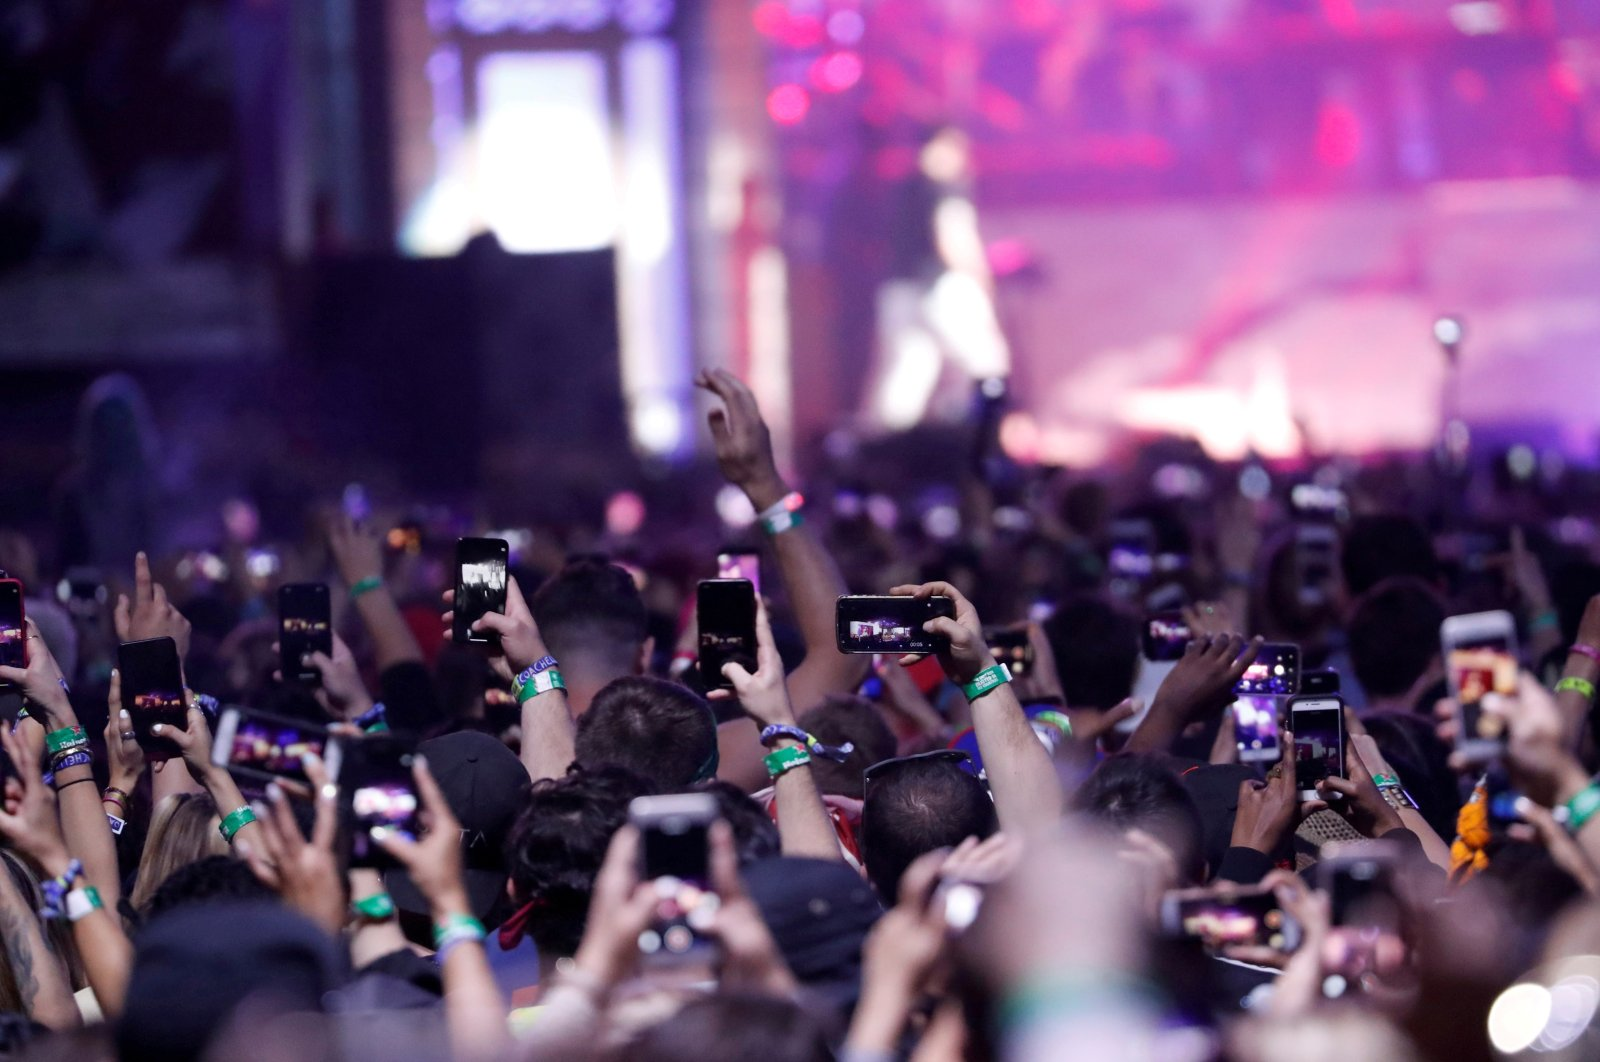 Concertgoers use their mobile phones during Eminem's performance at the Coachella Valley Music and Arts Festival in Indio, California, U.S., April 15, 2018. (REUTERS Photo)